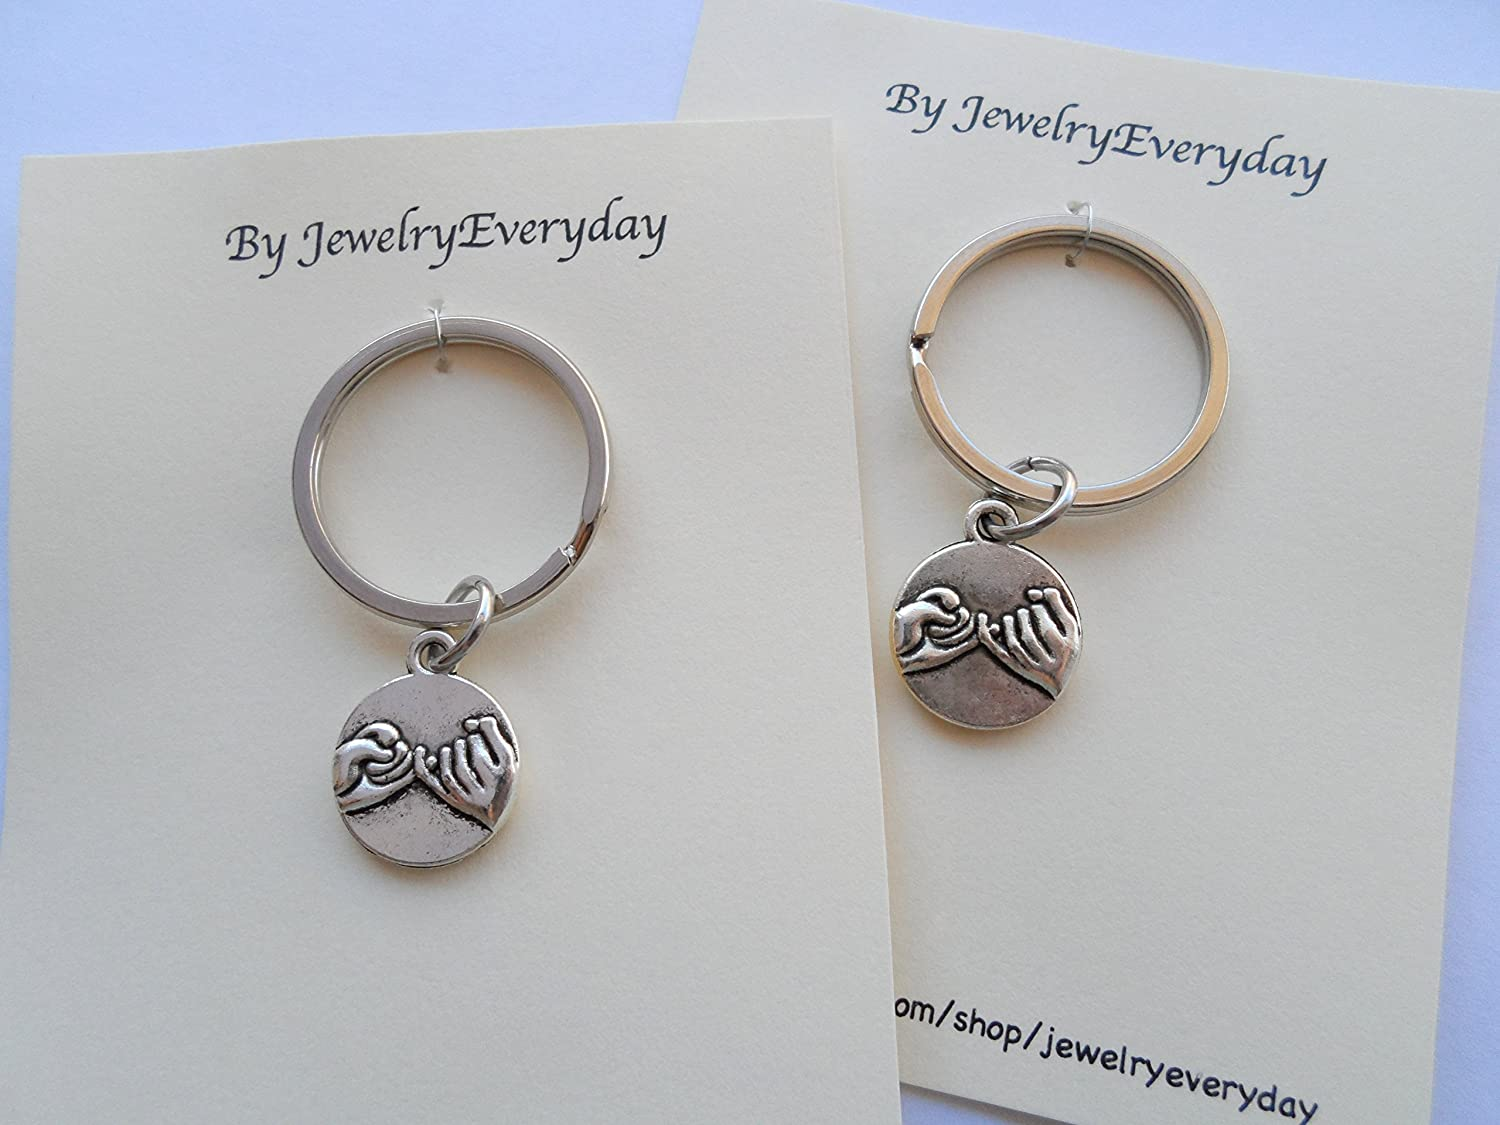 JewelryEveryday Double Pinky Promise Charm Keychains; Couple Keychains Promise Gift